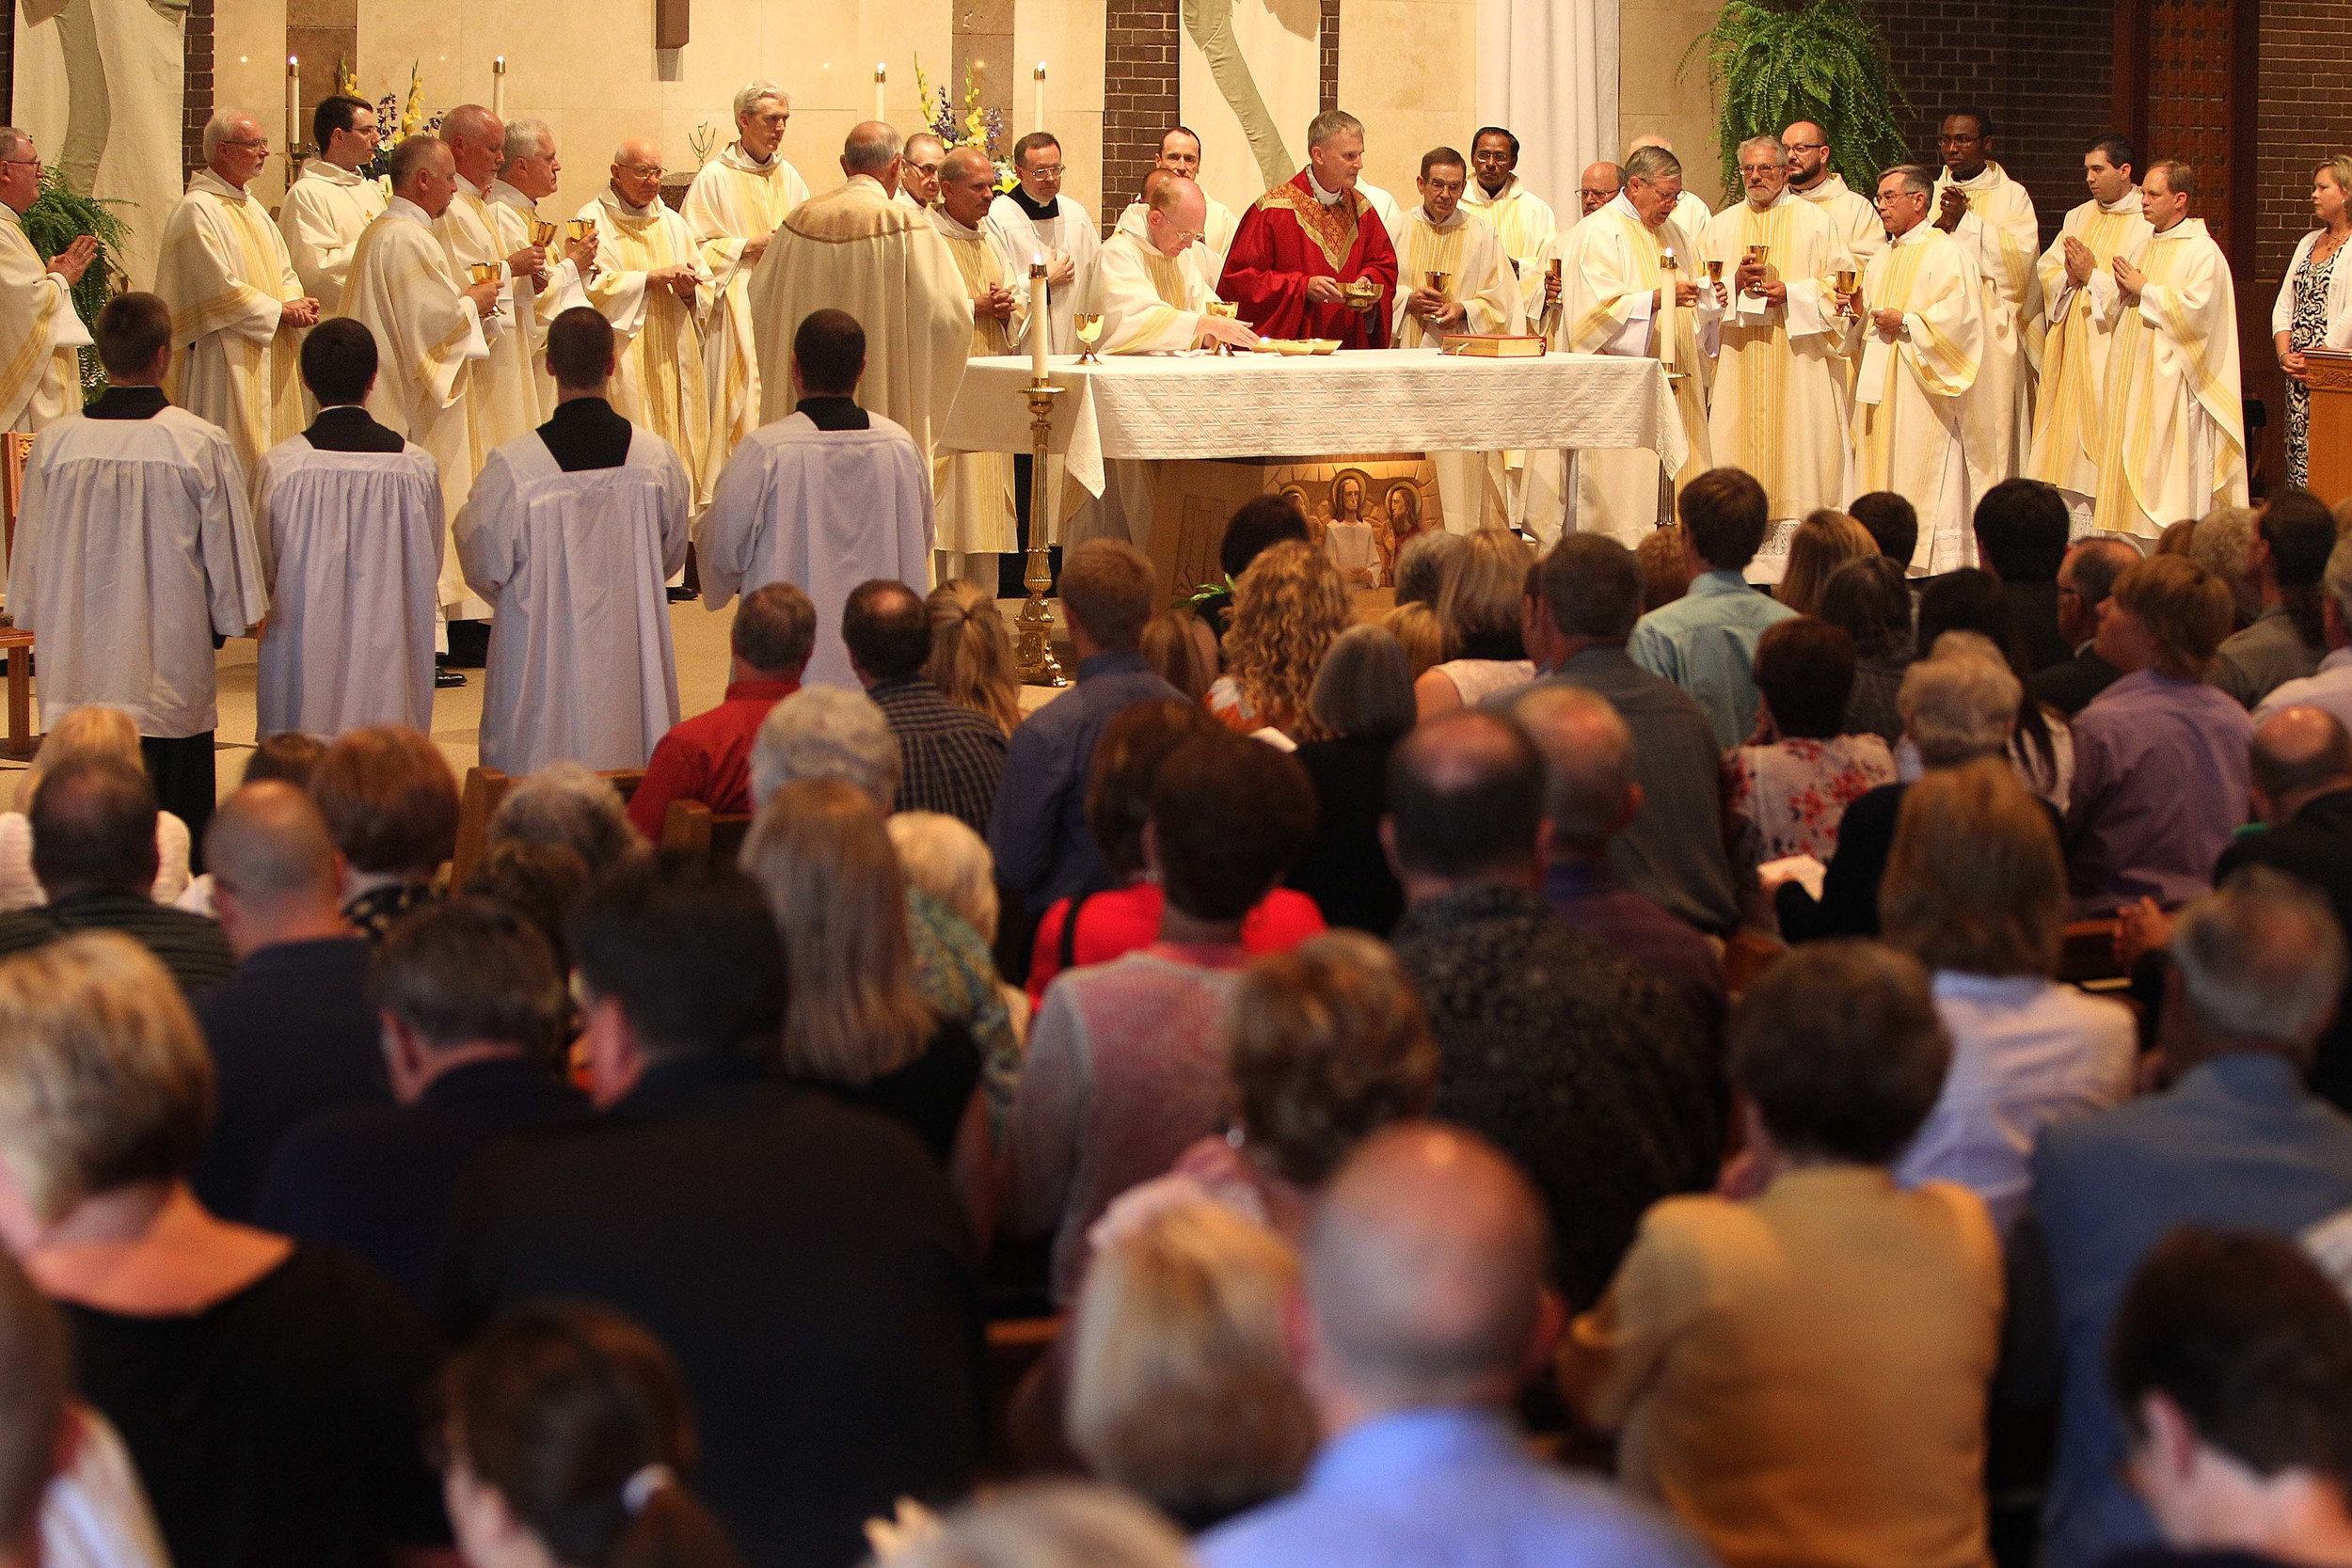 Ordination-10232.jpg